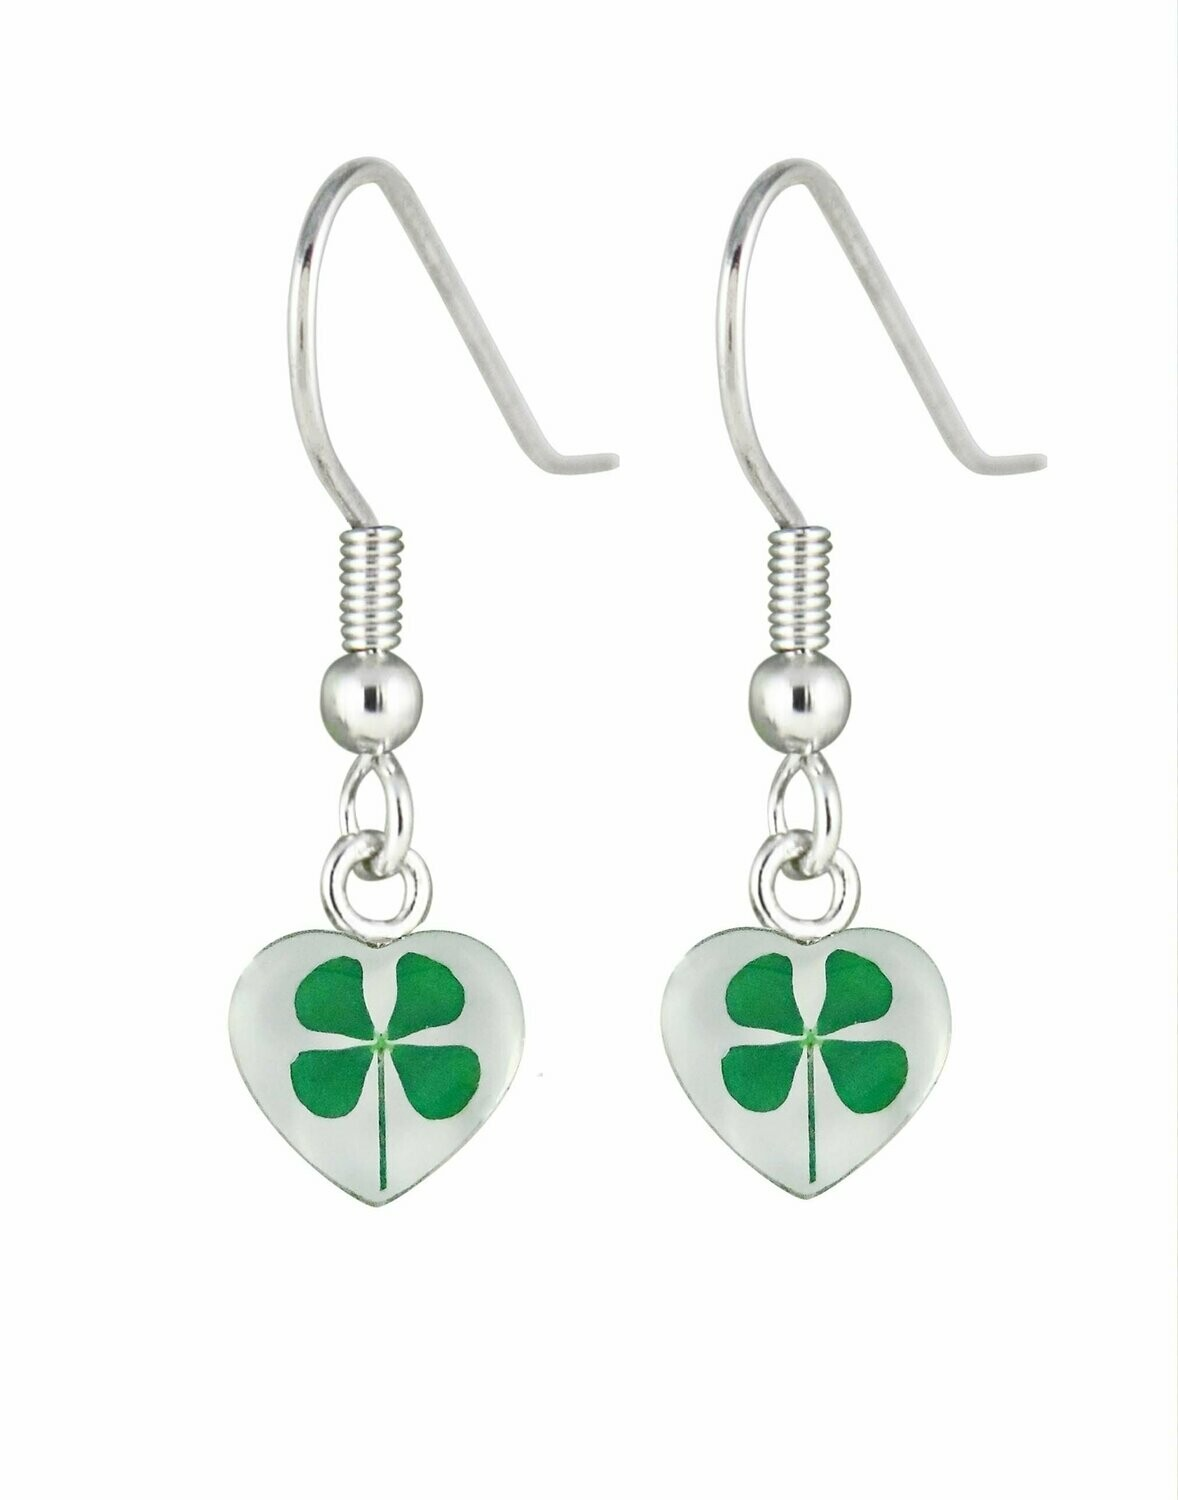 Four-Leaf Clover, Heart Hanging Earrings, White Background